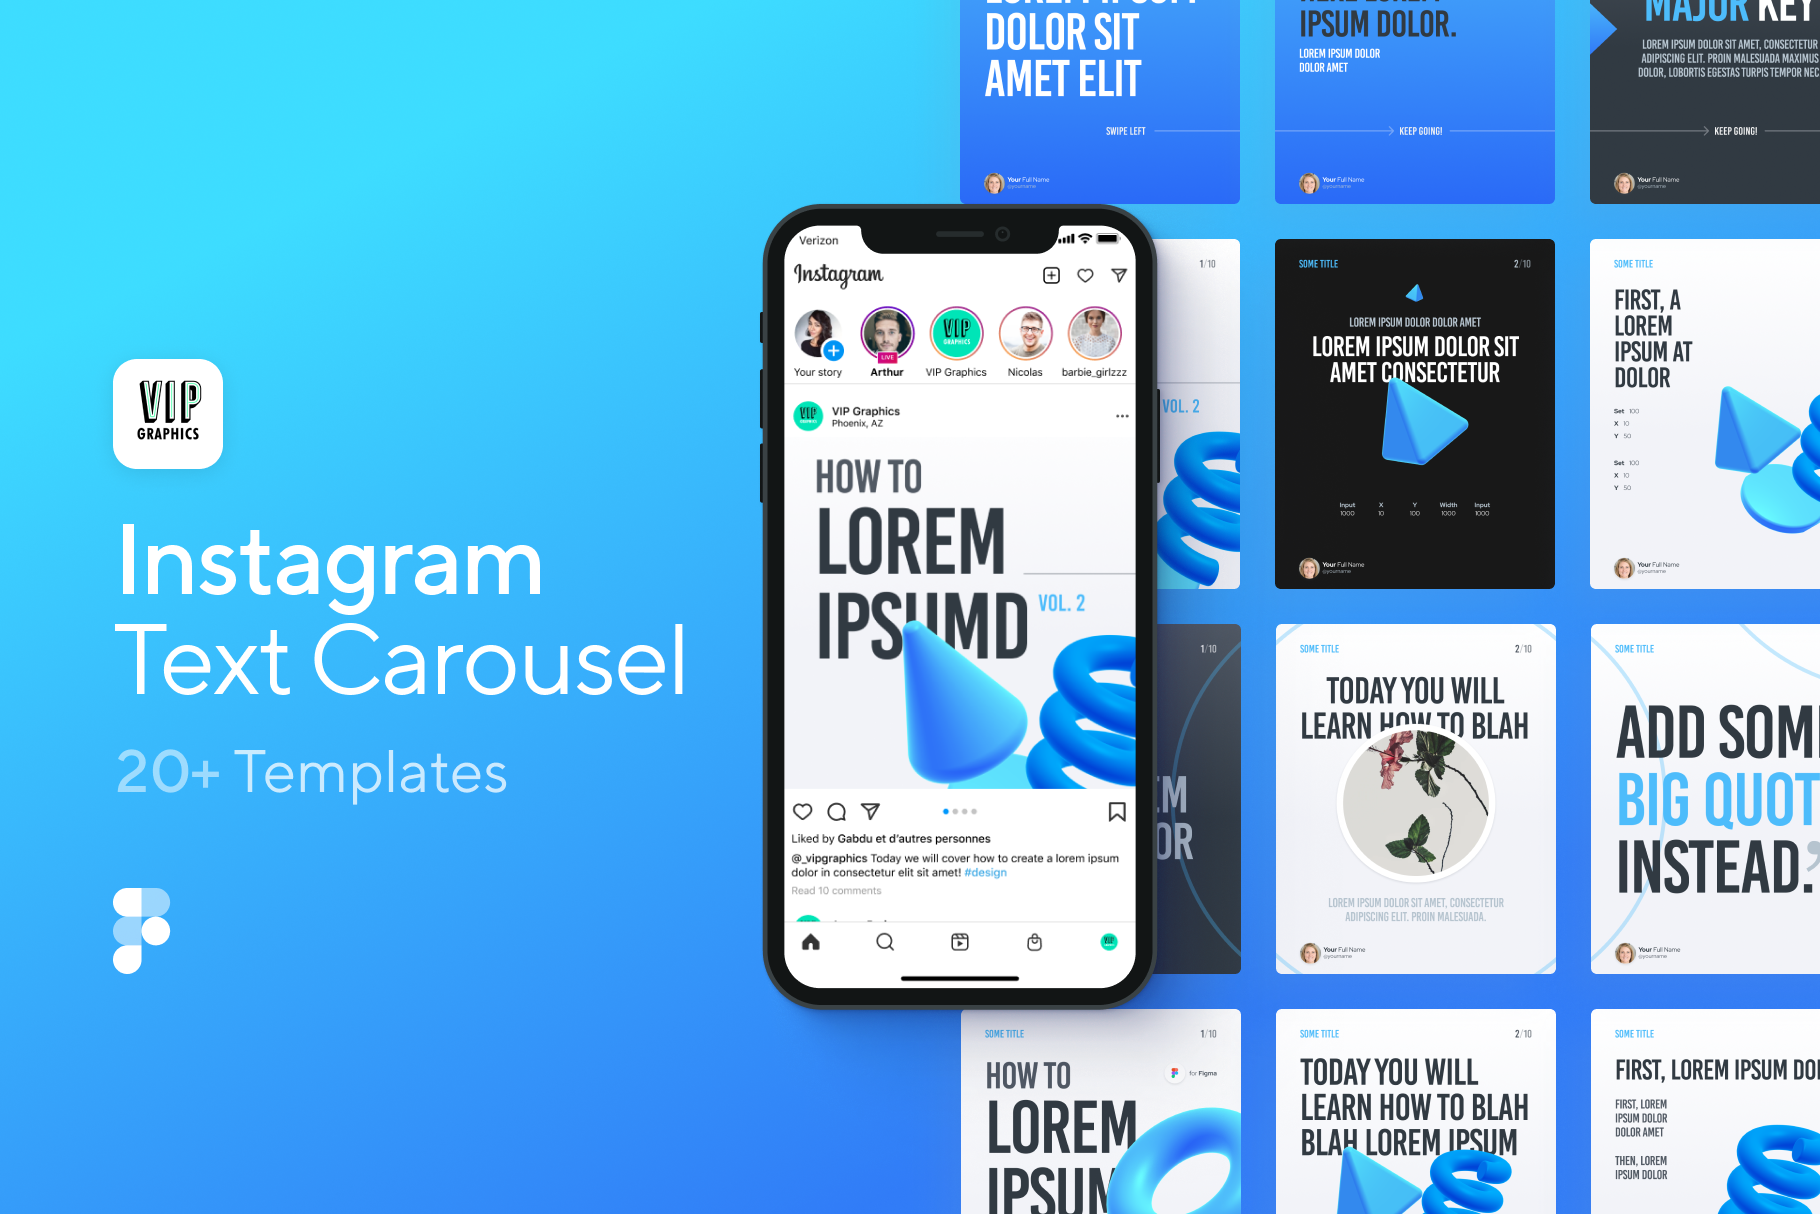 Creative Instagram Carousel Template for Figma | VIP Graphics